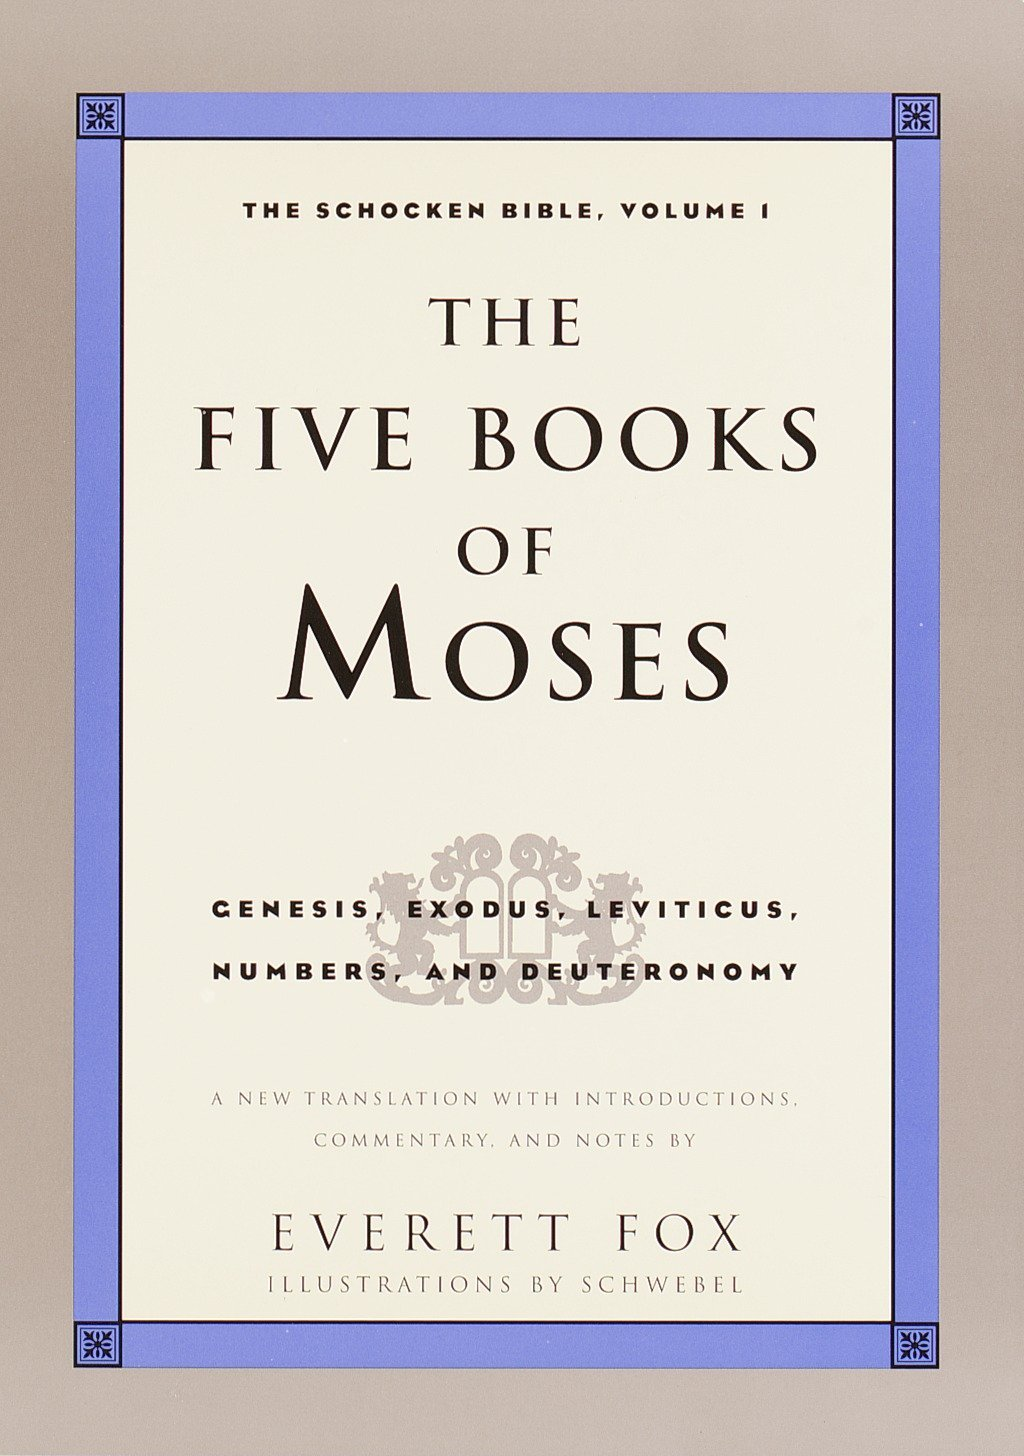 The Five Books of Moses: Genesis, Exodus, Leviticus, Numbers